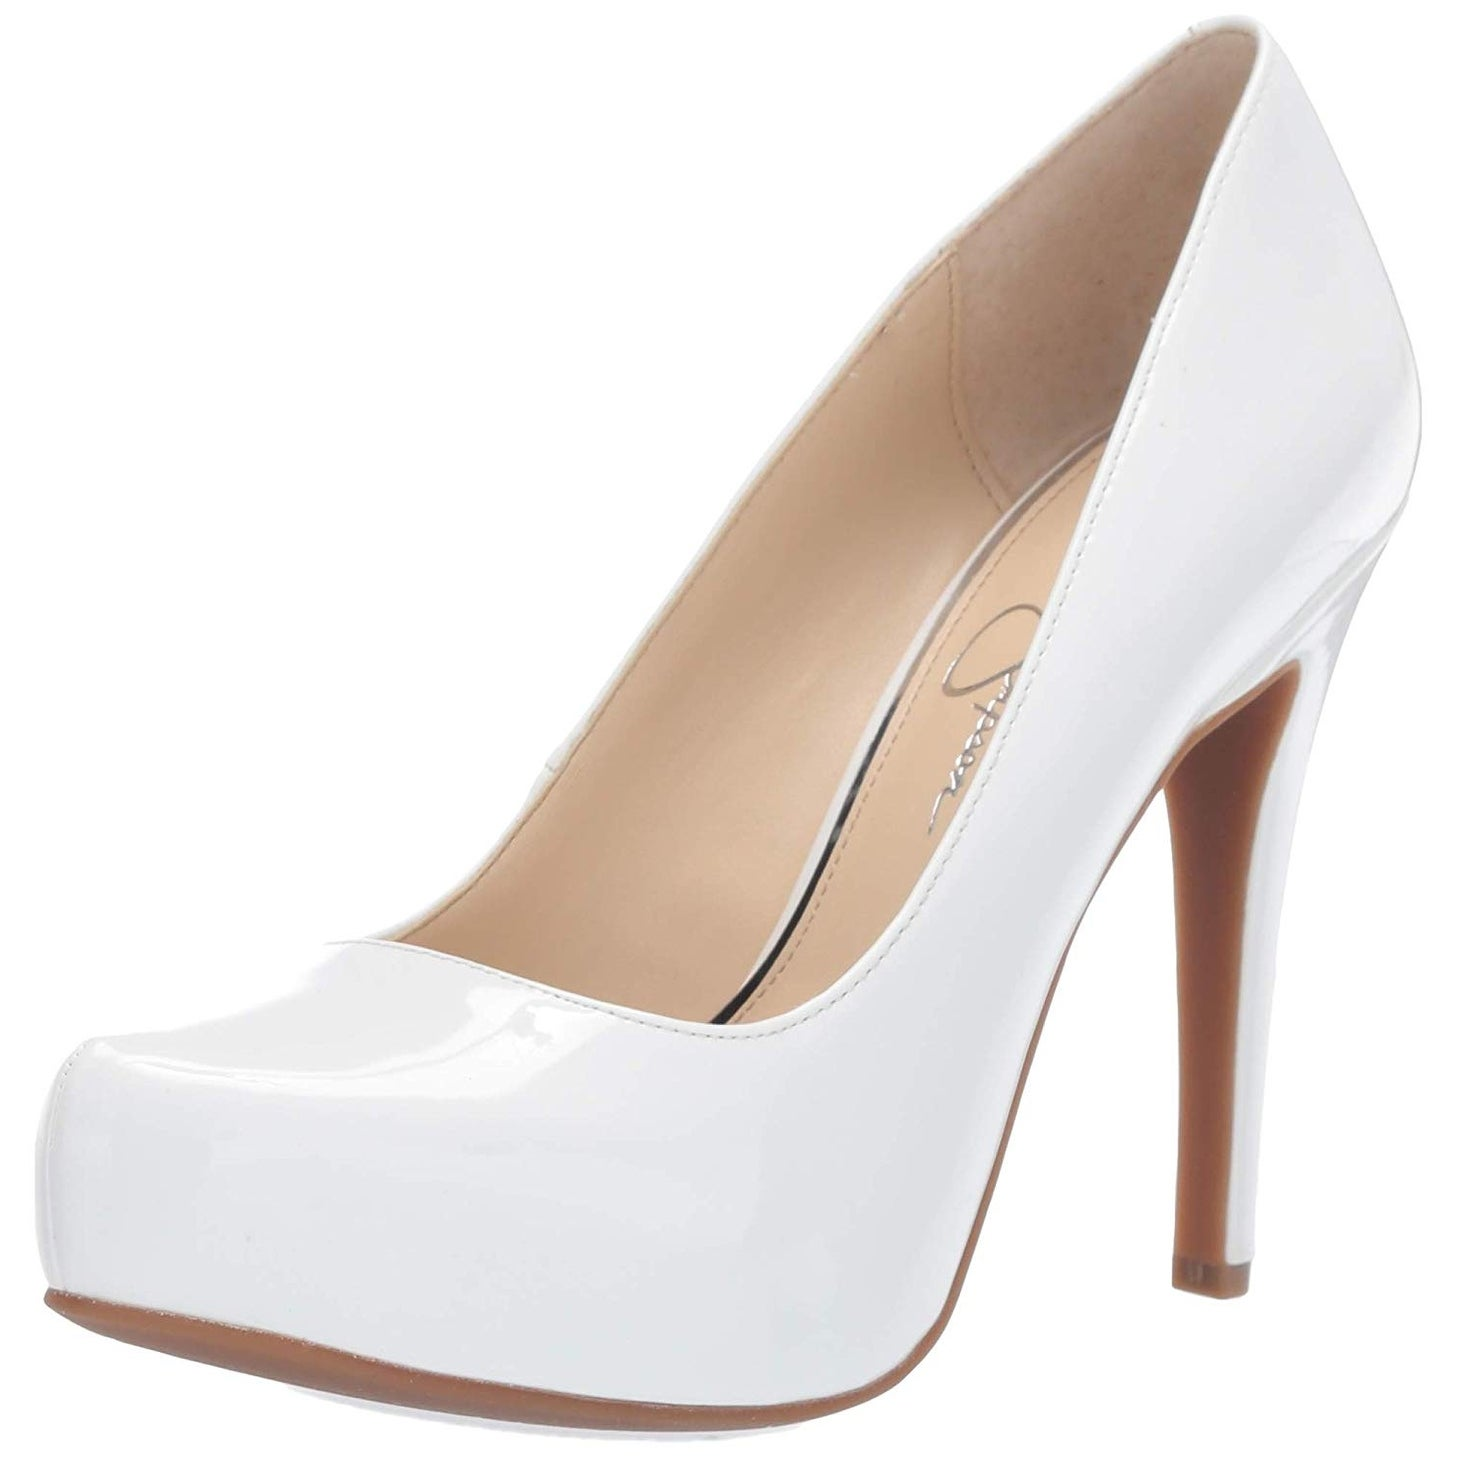 Jessica Simpson Womens Parisah Classic Pump Heels NEW WITHOUT BOX